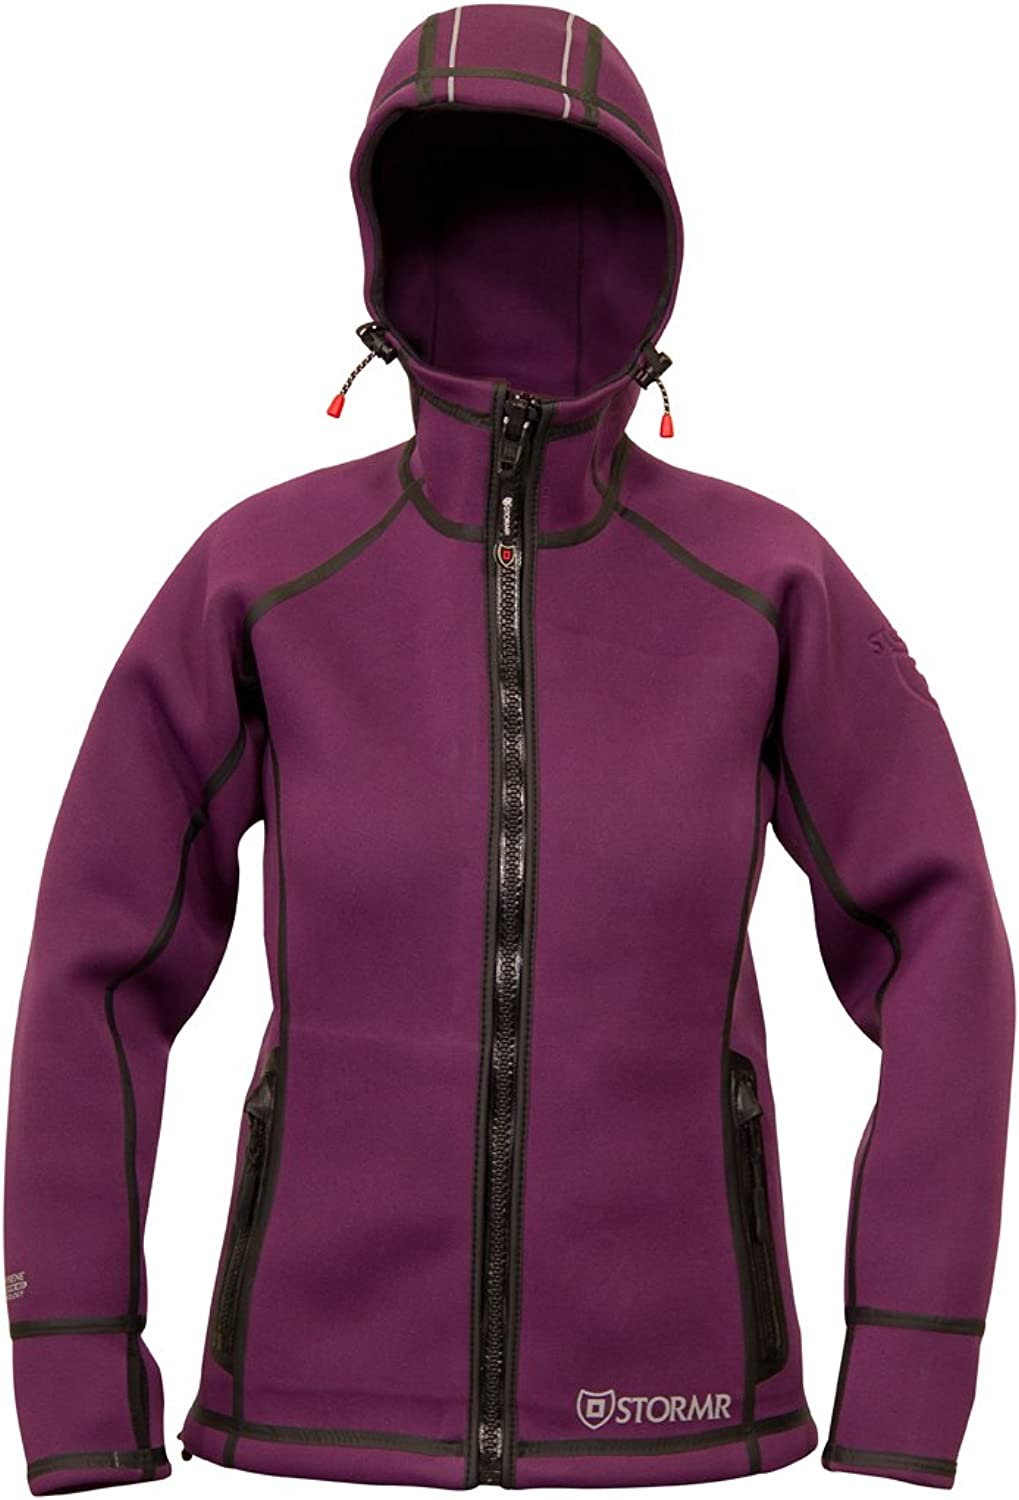 STORMR Women's Typhoon Neoprene Waterproof, Windproof, Warm, Perfect Jacket for Sailing, Cycling, Running, Rock Climbing, Hiking, Camping